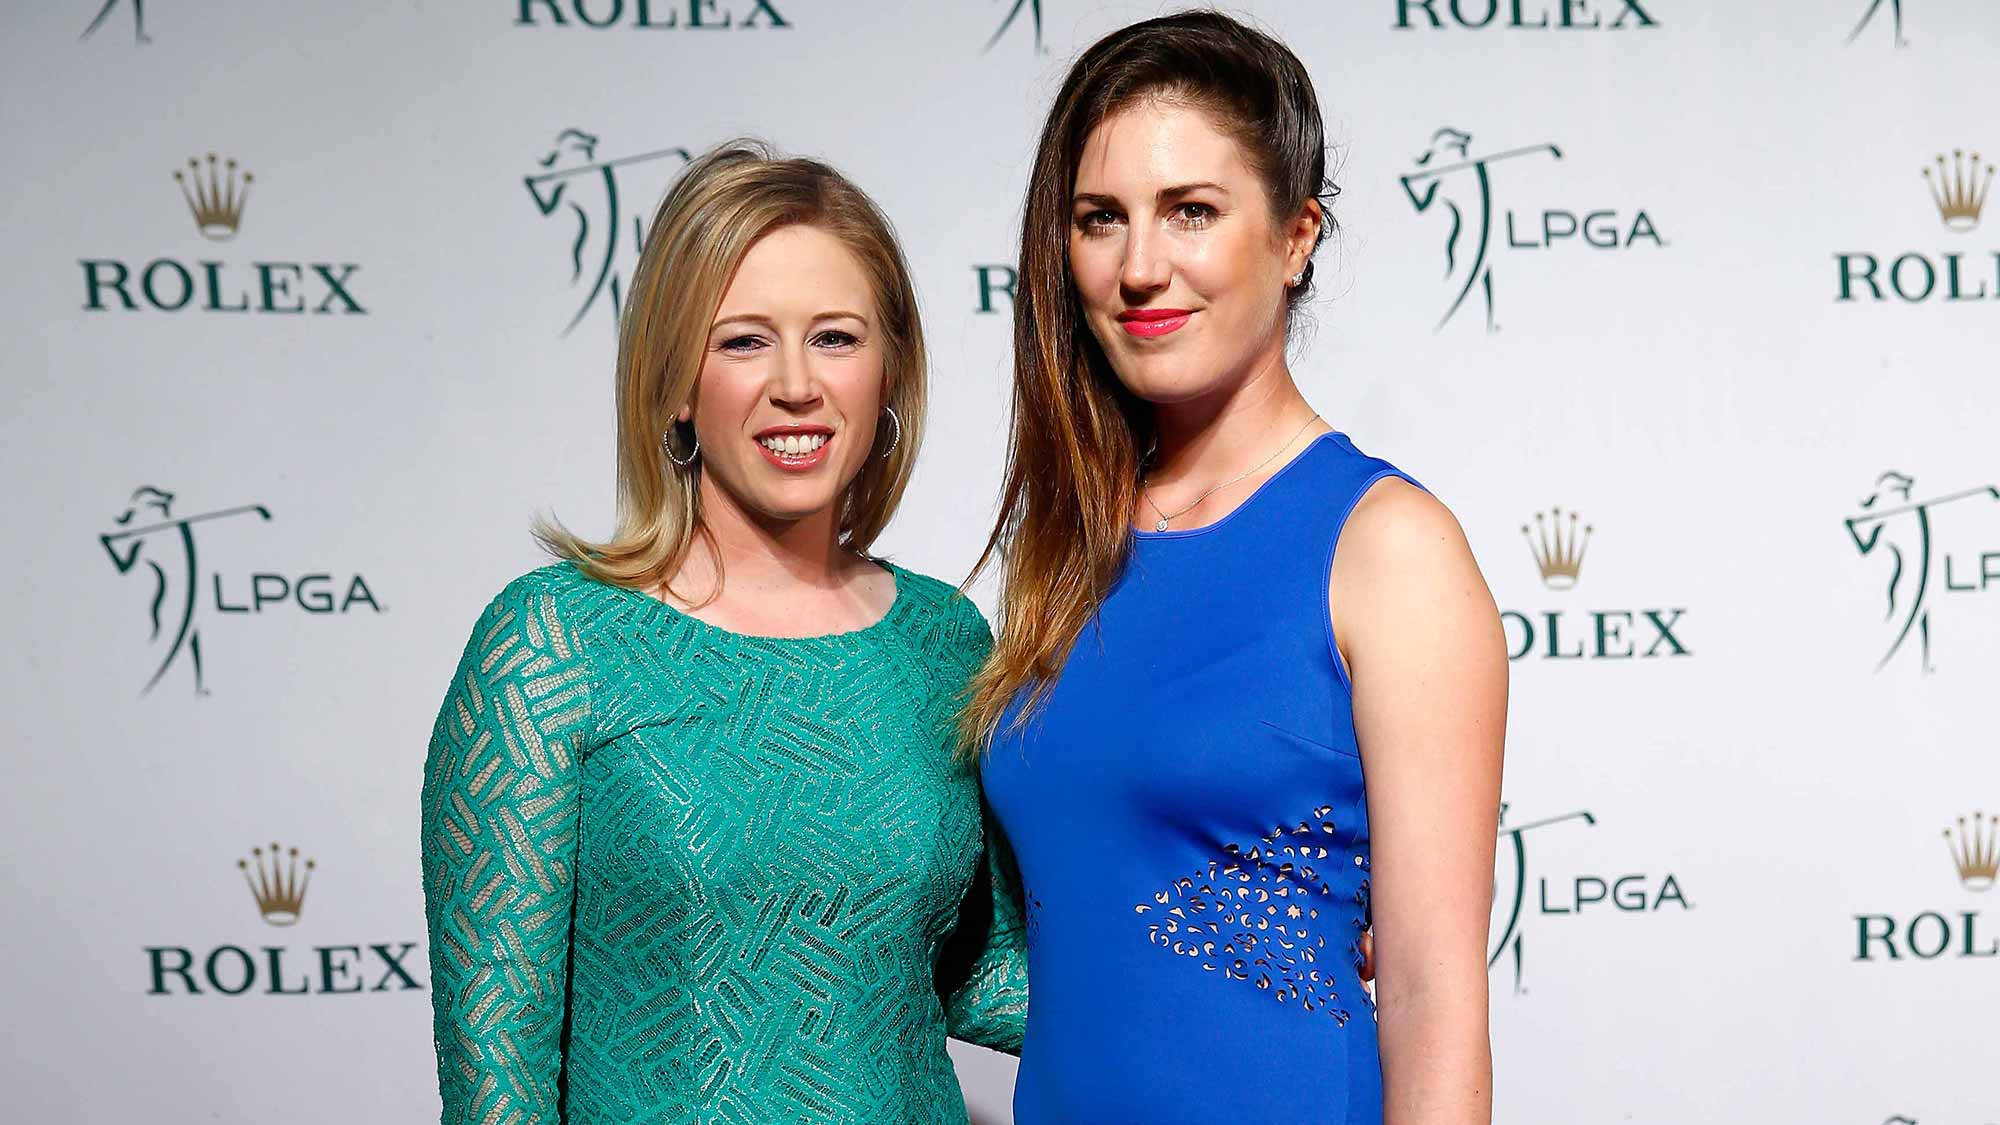 Morgan Pressel and Sandra Gal during the Rolex Player Awards